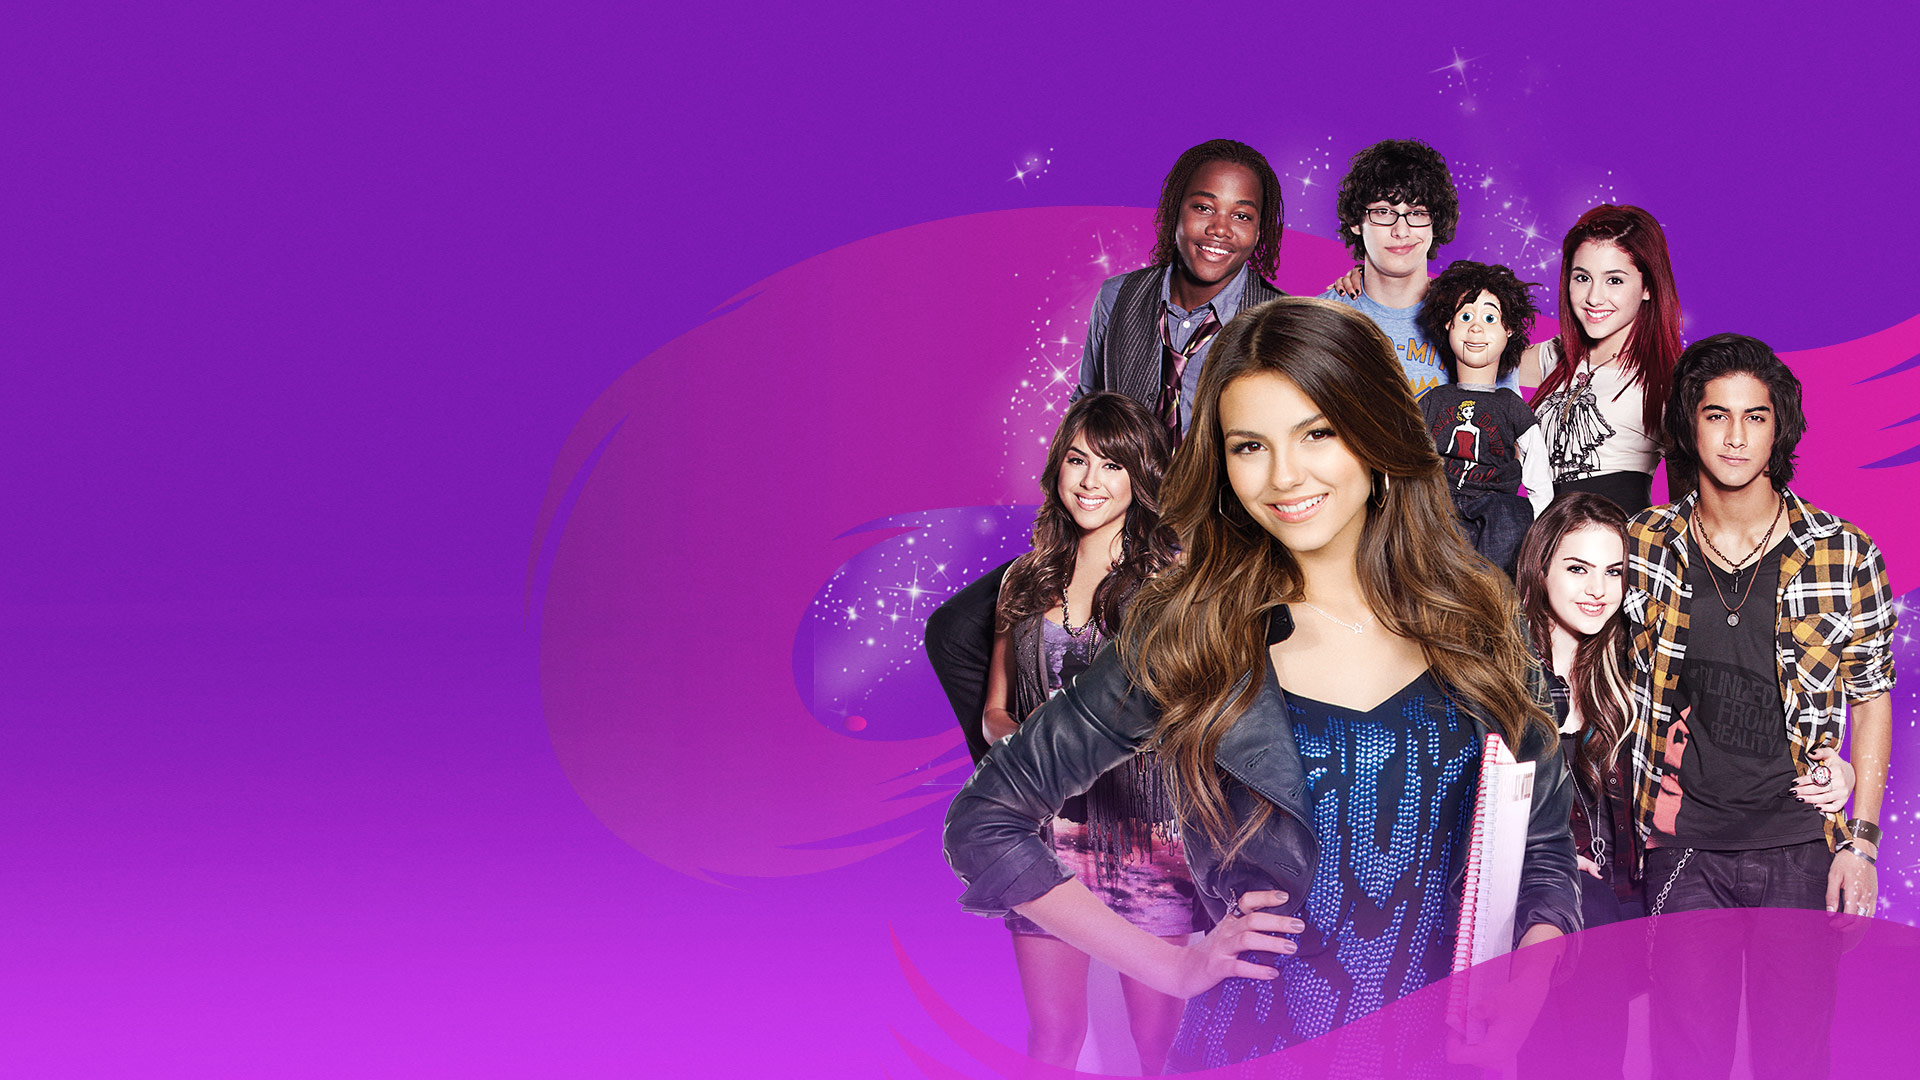 Amazon com: Watch VICTORiOUS Volume 2 | Prime Video